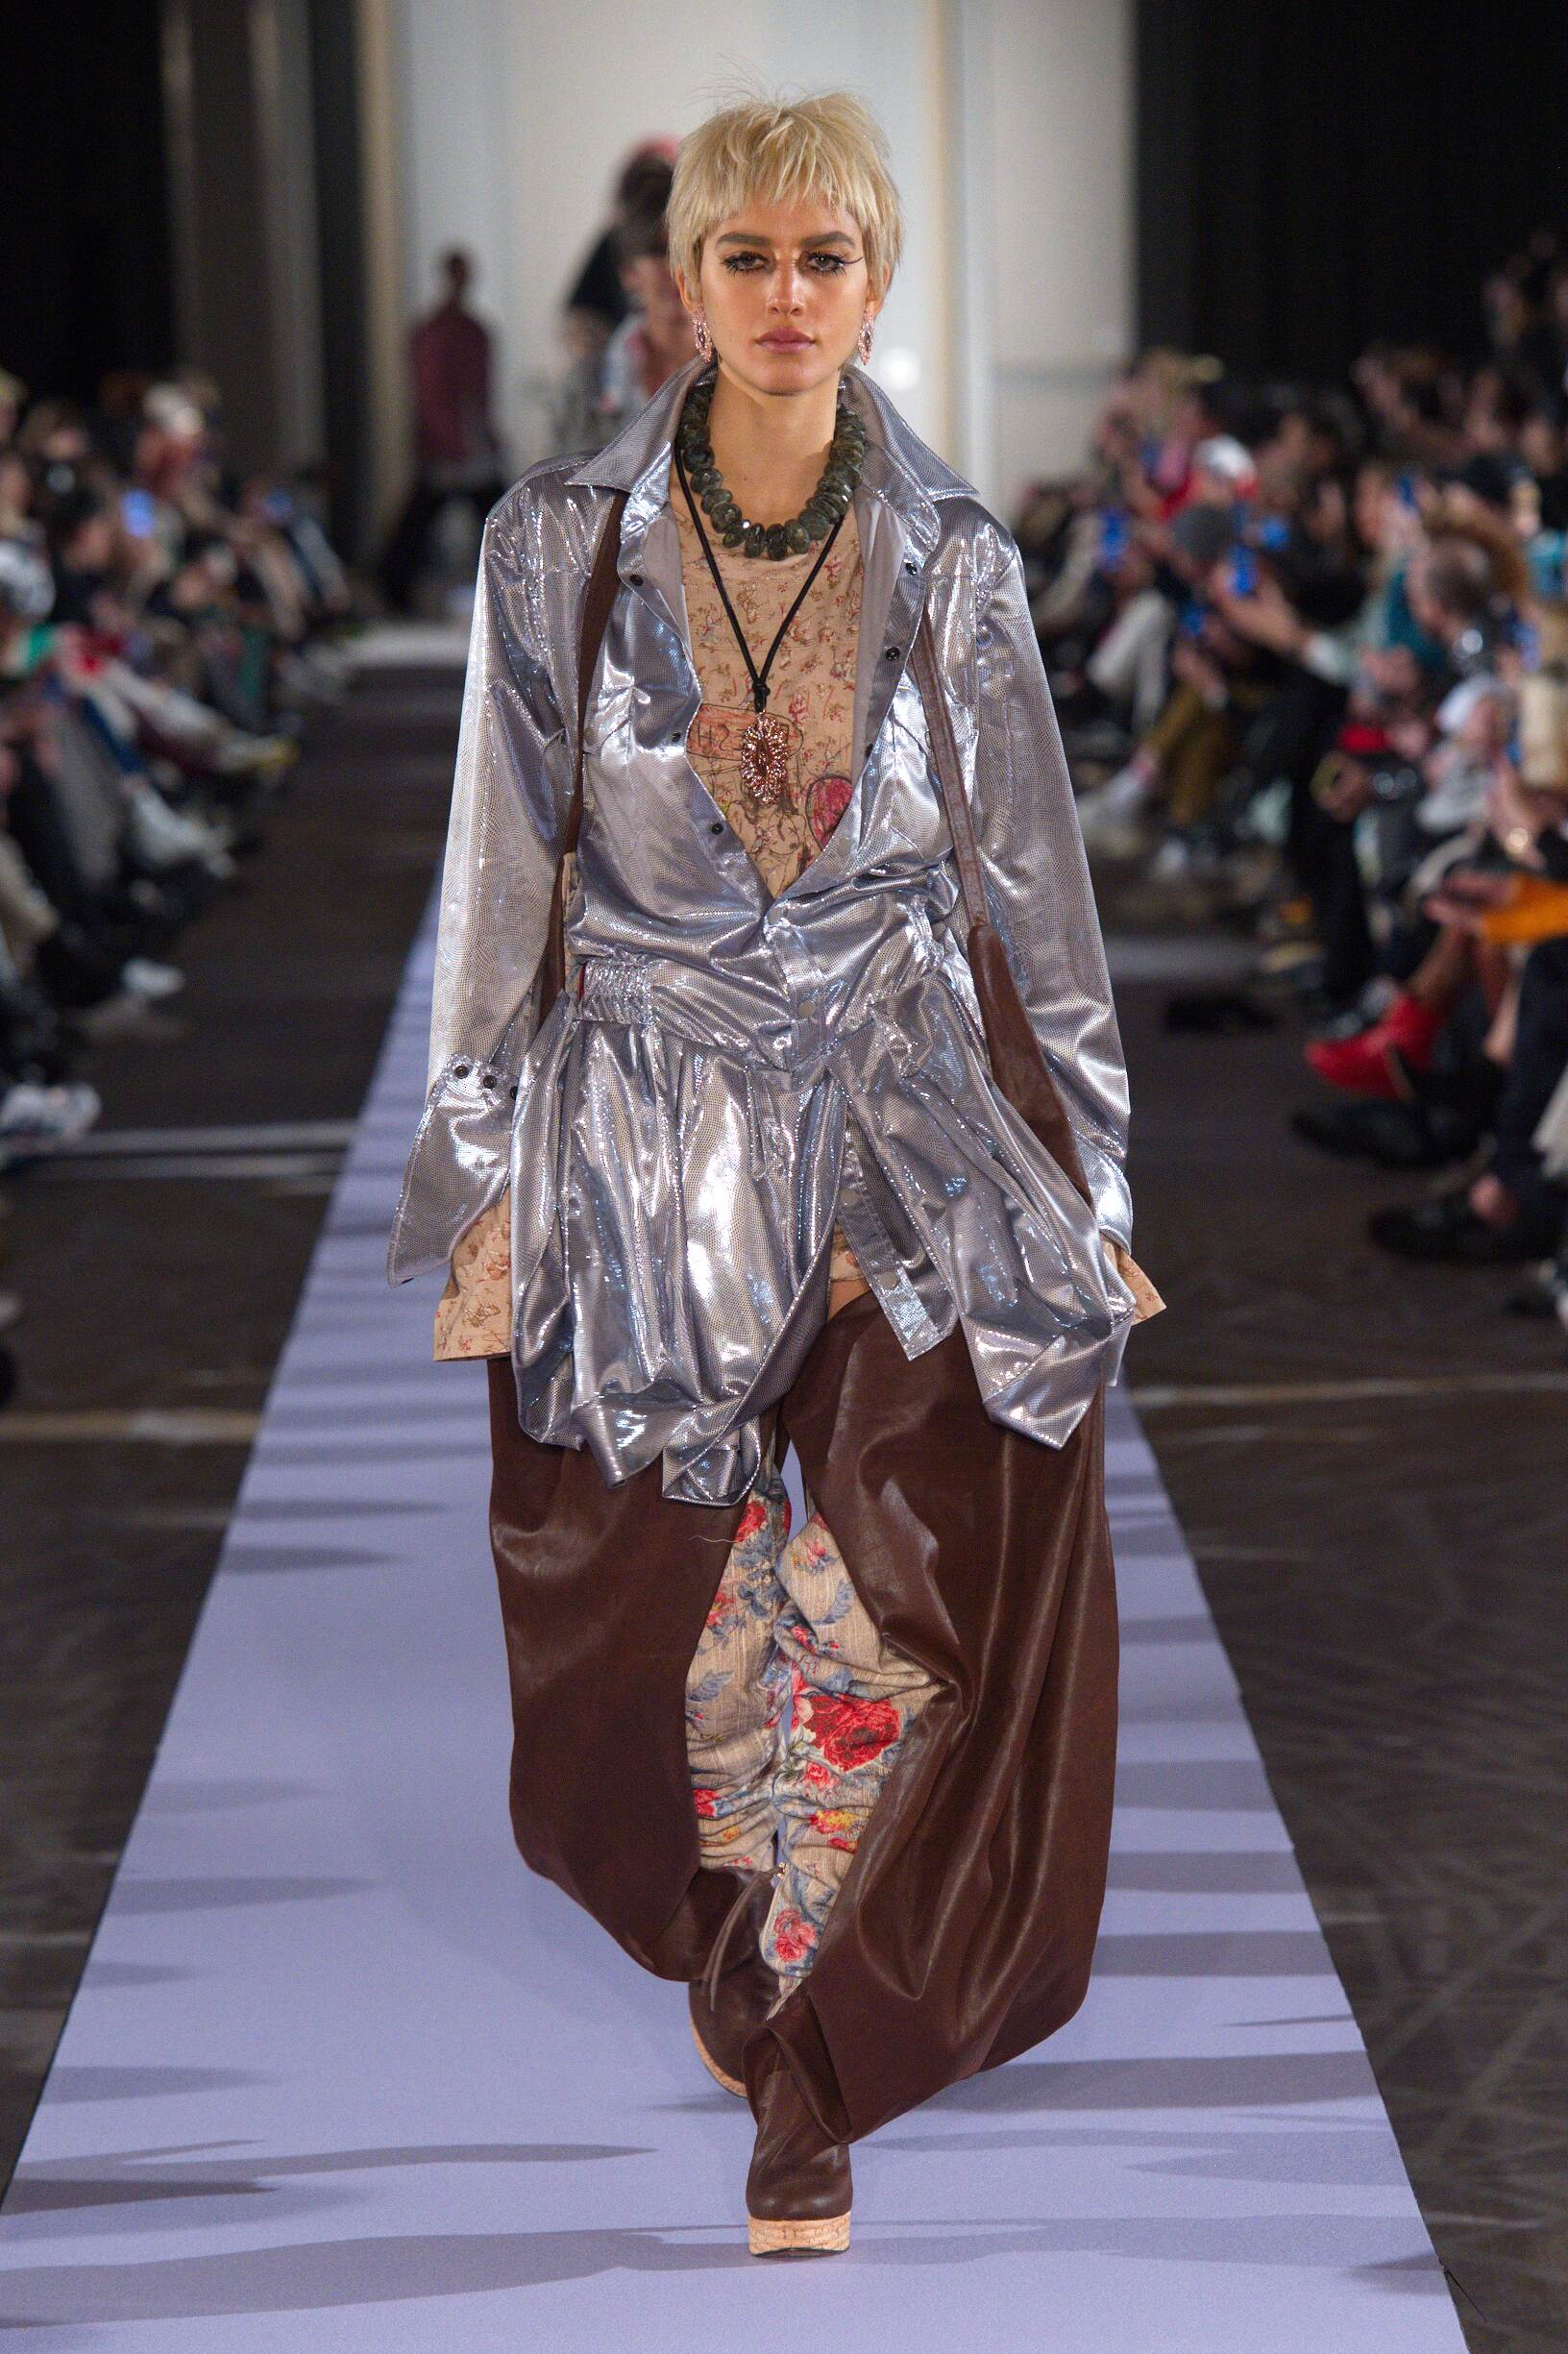 Fashion Show Woman Model Andreas Kronthaler for Vivienne Westwood Catwalk